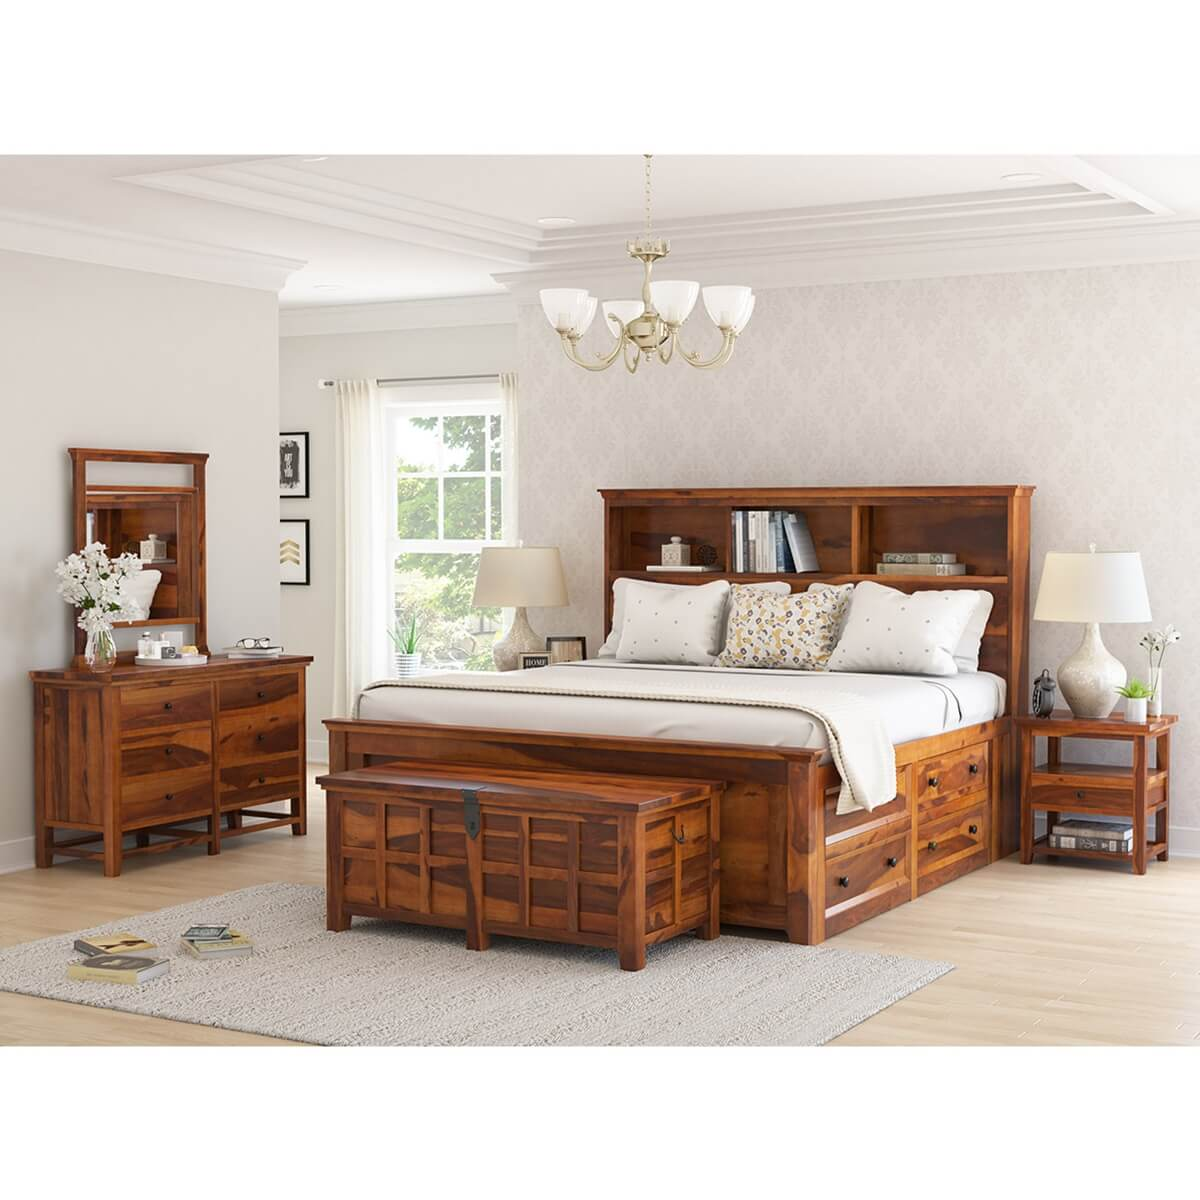 Mission Modern Solid Wood King Size Platform Bed 7pc Bedroom Set